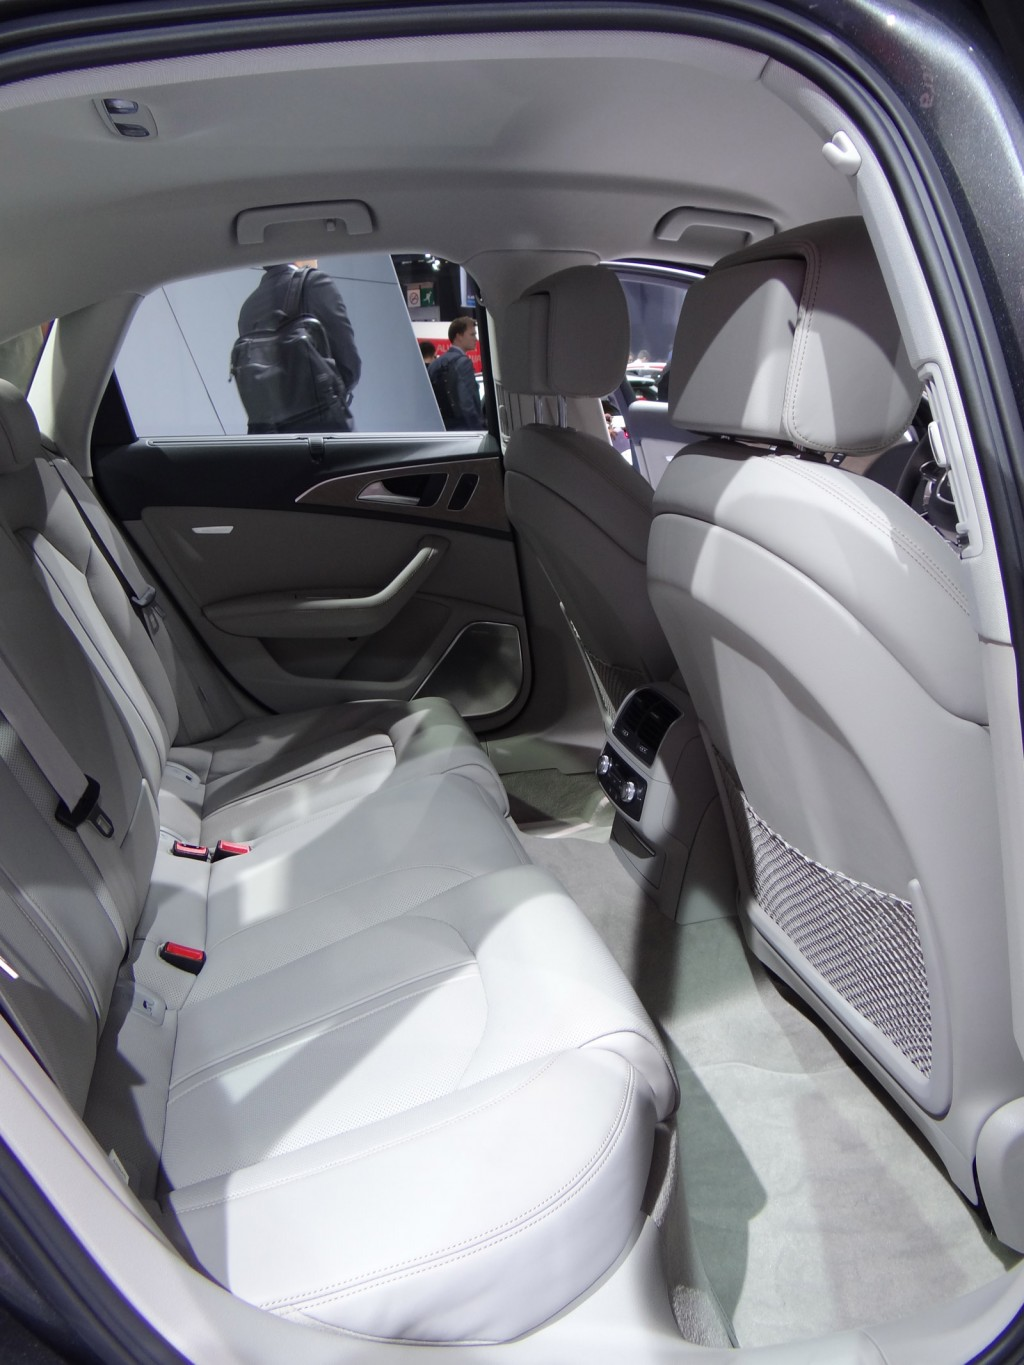 2016 Audi A6 3 0t Interior: 2016 Audi A6 And S6: Full Details, Live Photos And Video